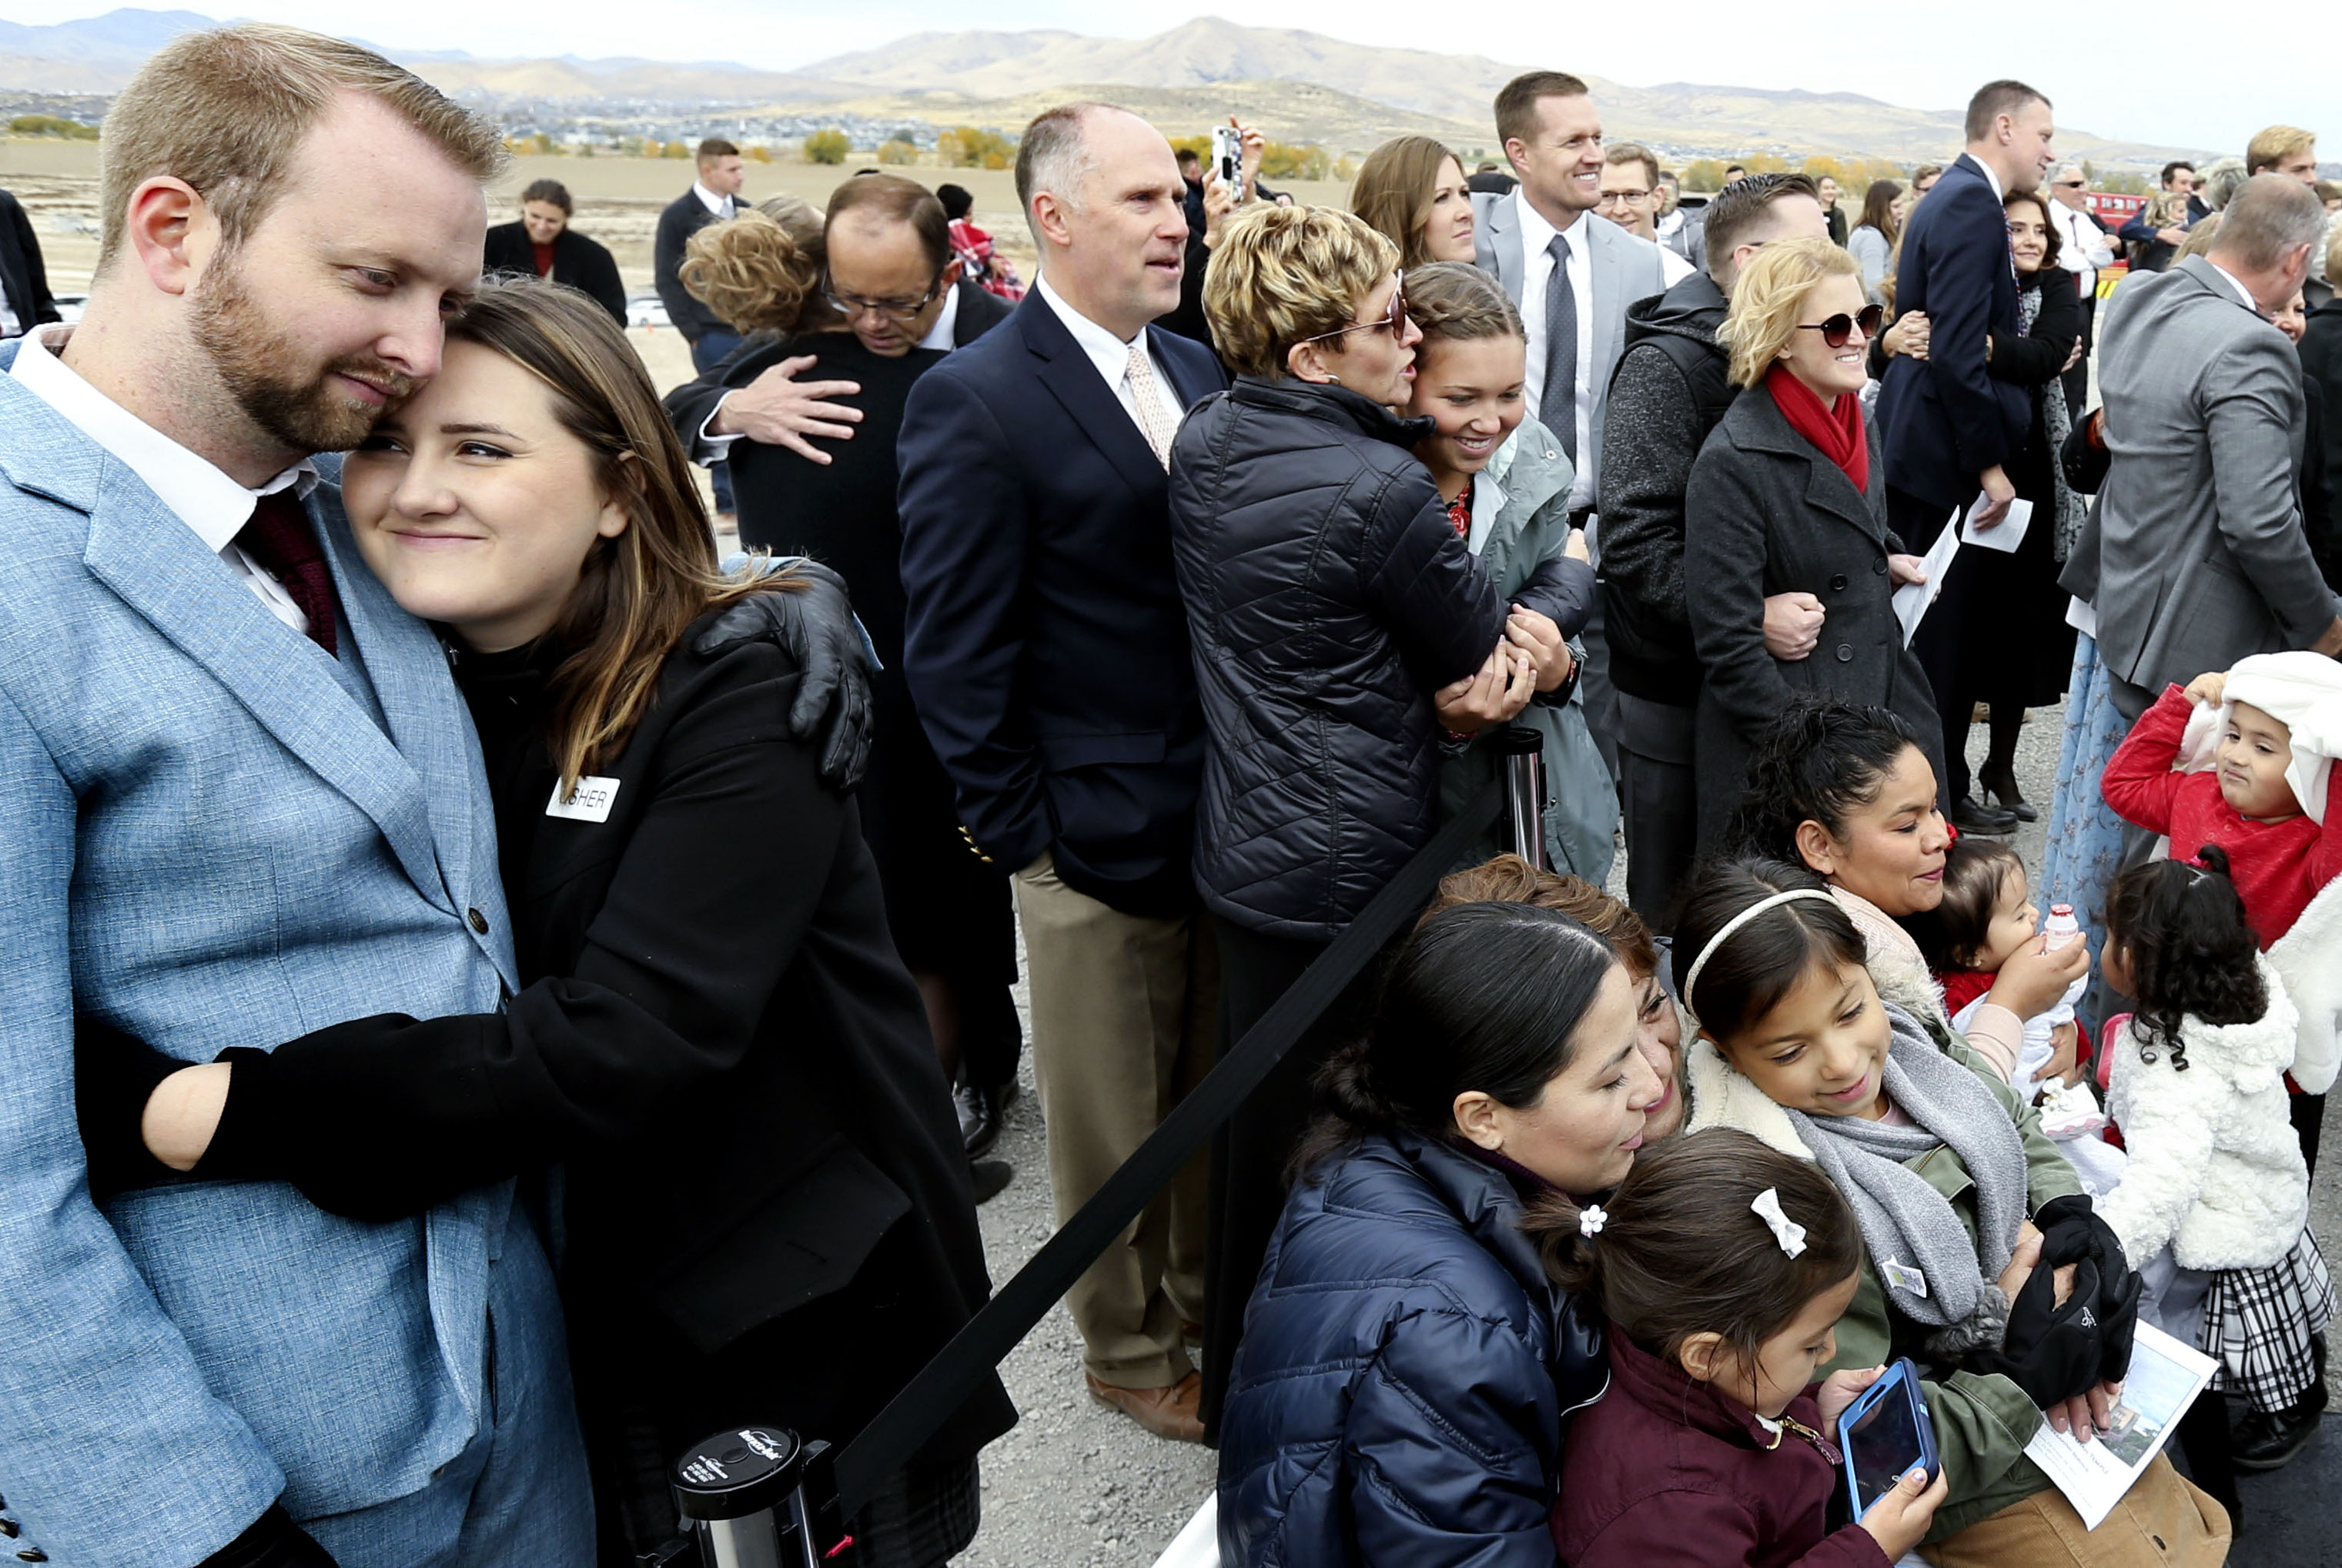 Elder Craig C. Christensen, president of the Utah Area, encourages the crowd to hug for warmth during the groundbreaking ceremony for the Saratoga Springs Utah Temple on Saturday, Oct. 19, 2019.